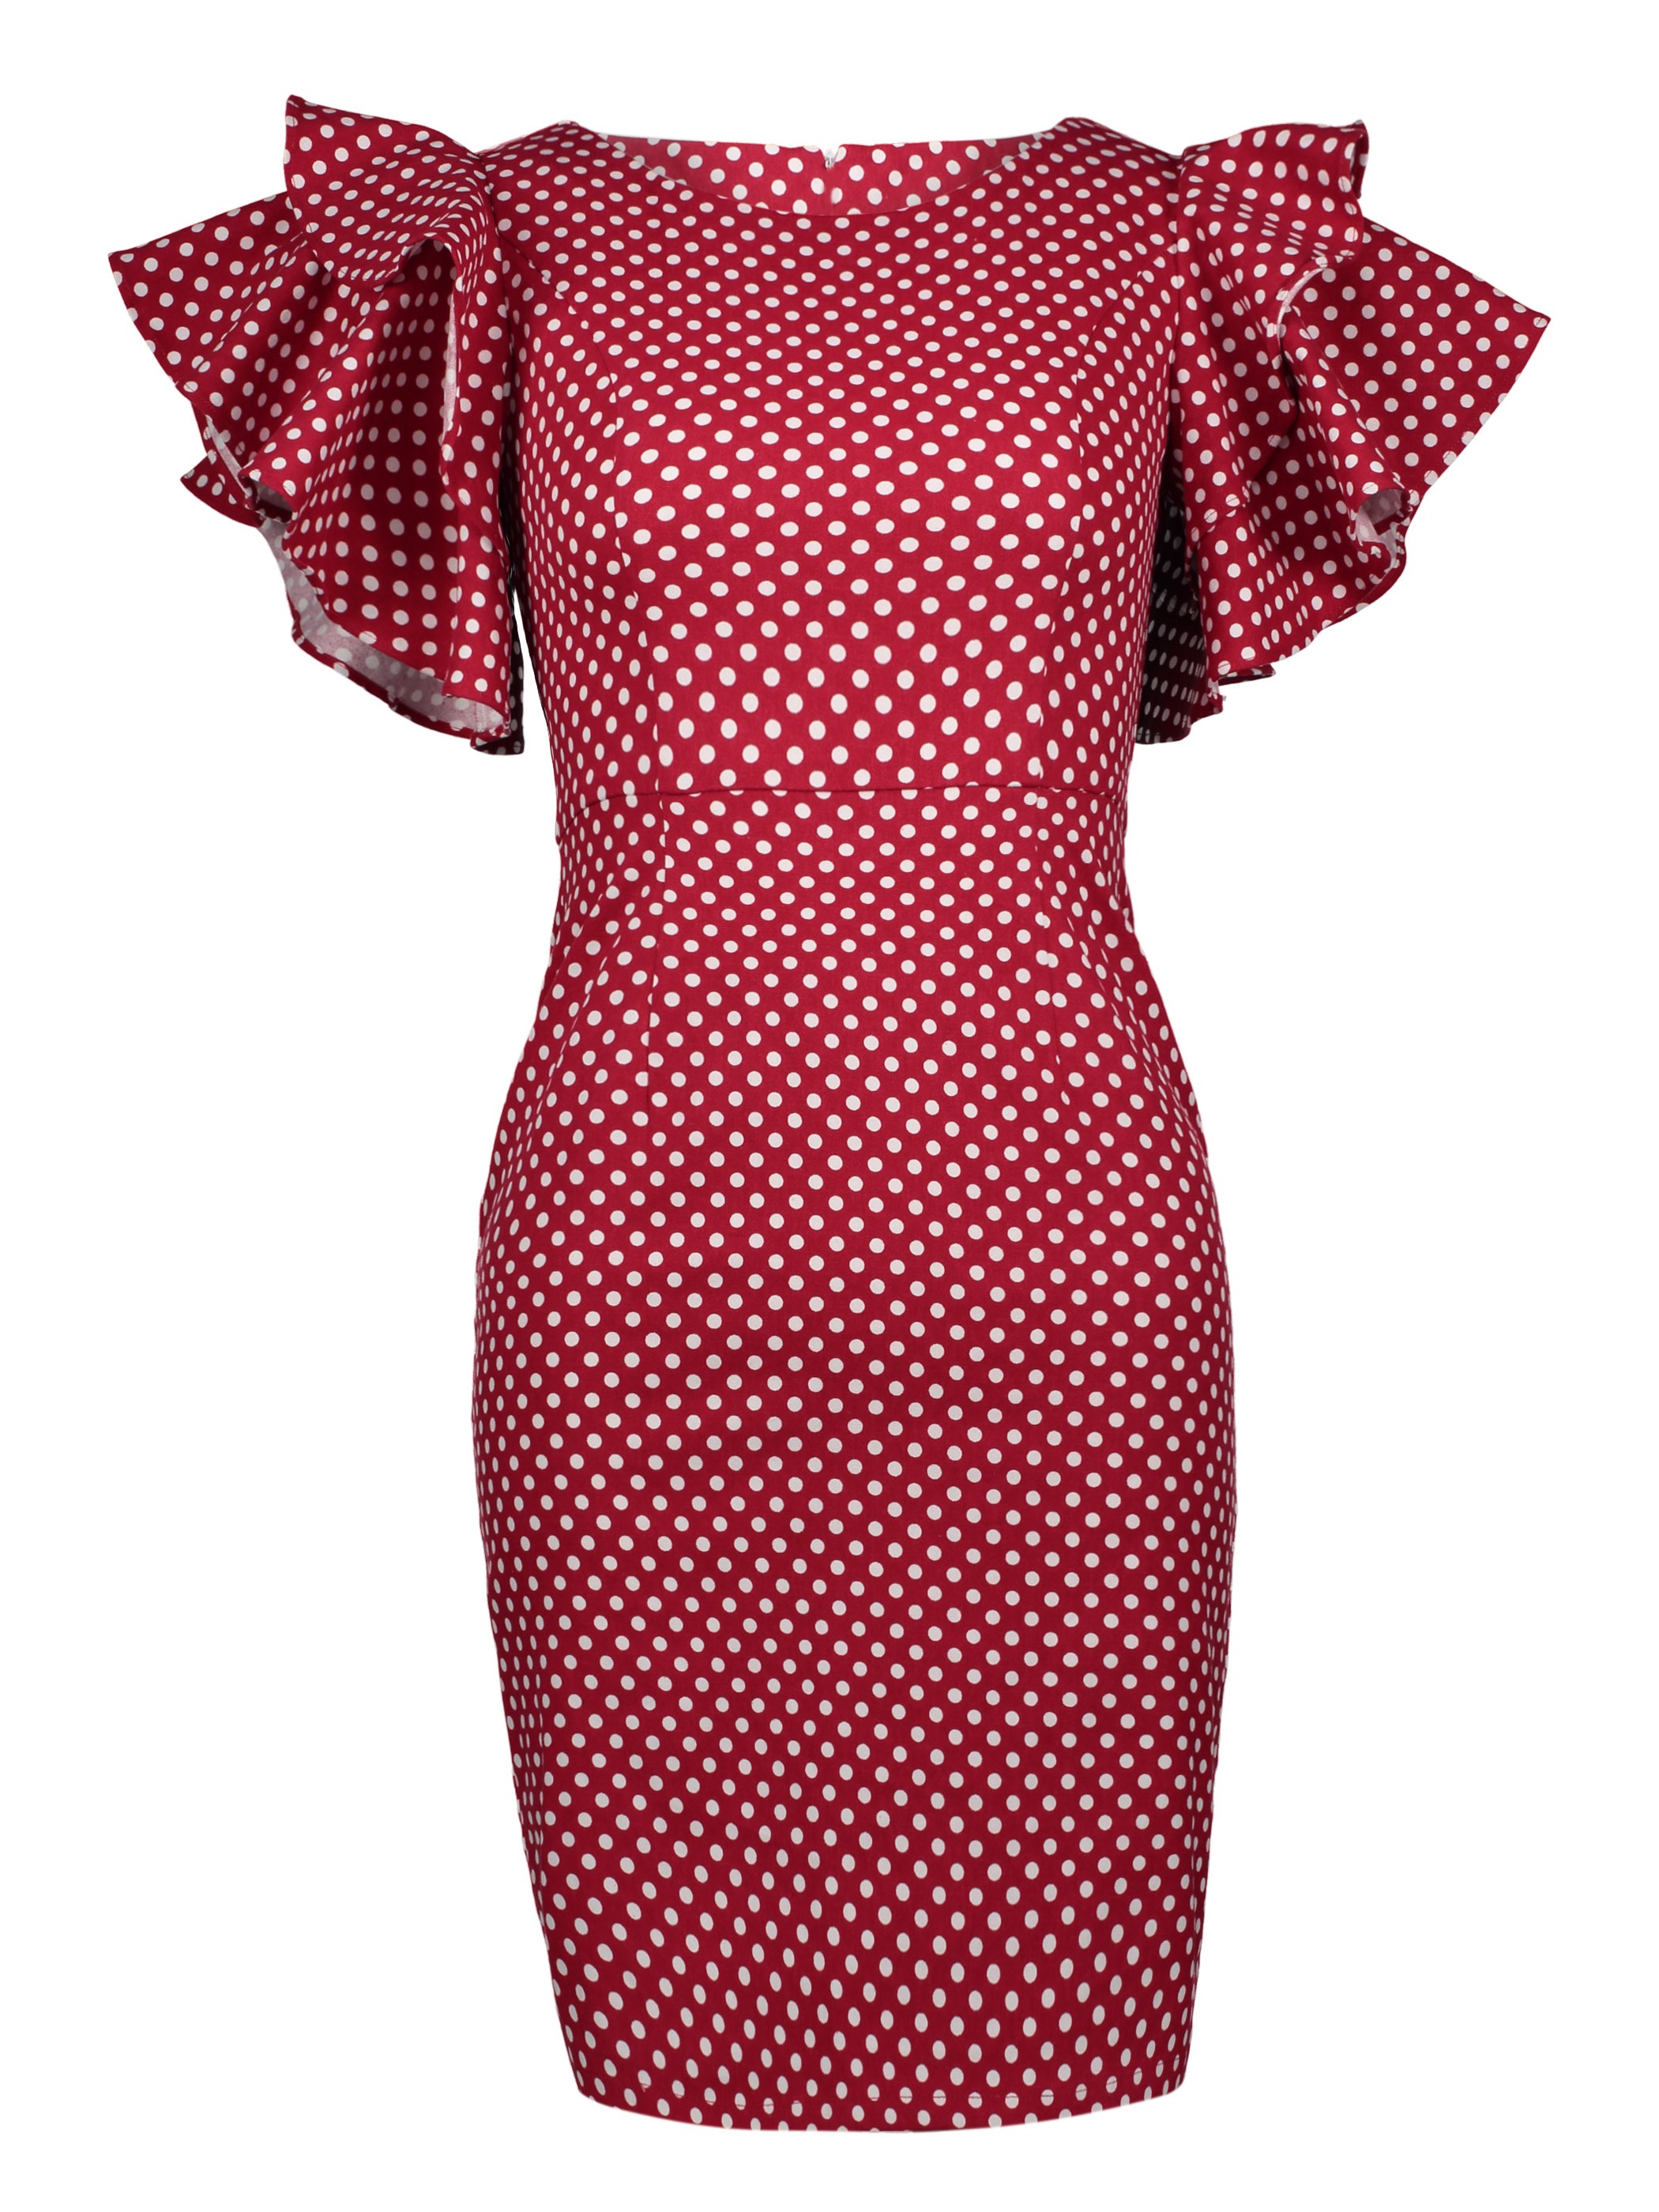 Ericdress Polka Dots Ruffle Sleeve Zipper Bodycon Dress